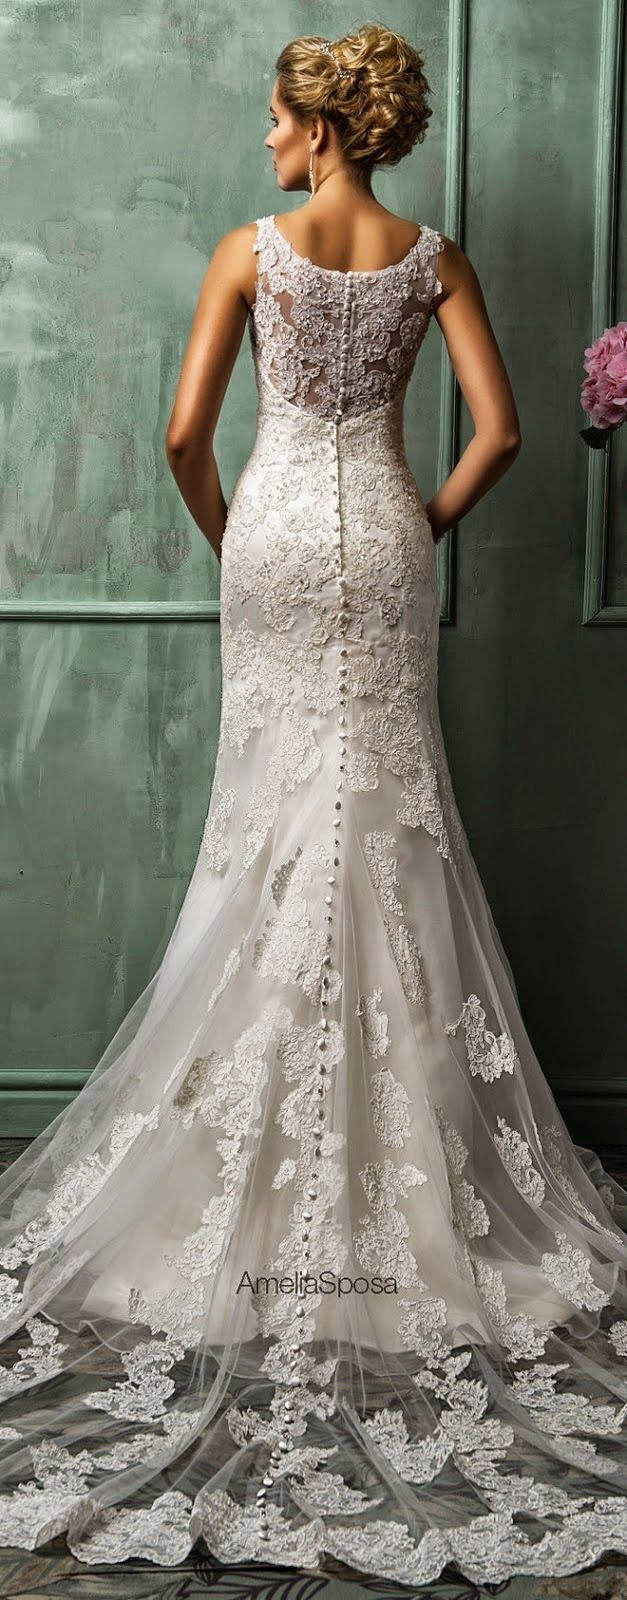 Best Wedding Dresses of 2014 - Belle The Magazine  What a beautiful dress to wear. With all that lace it is very feminine.